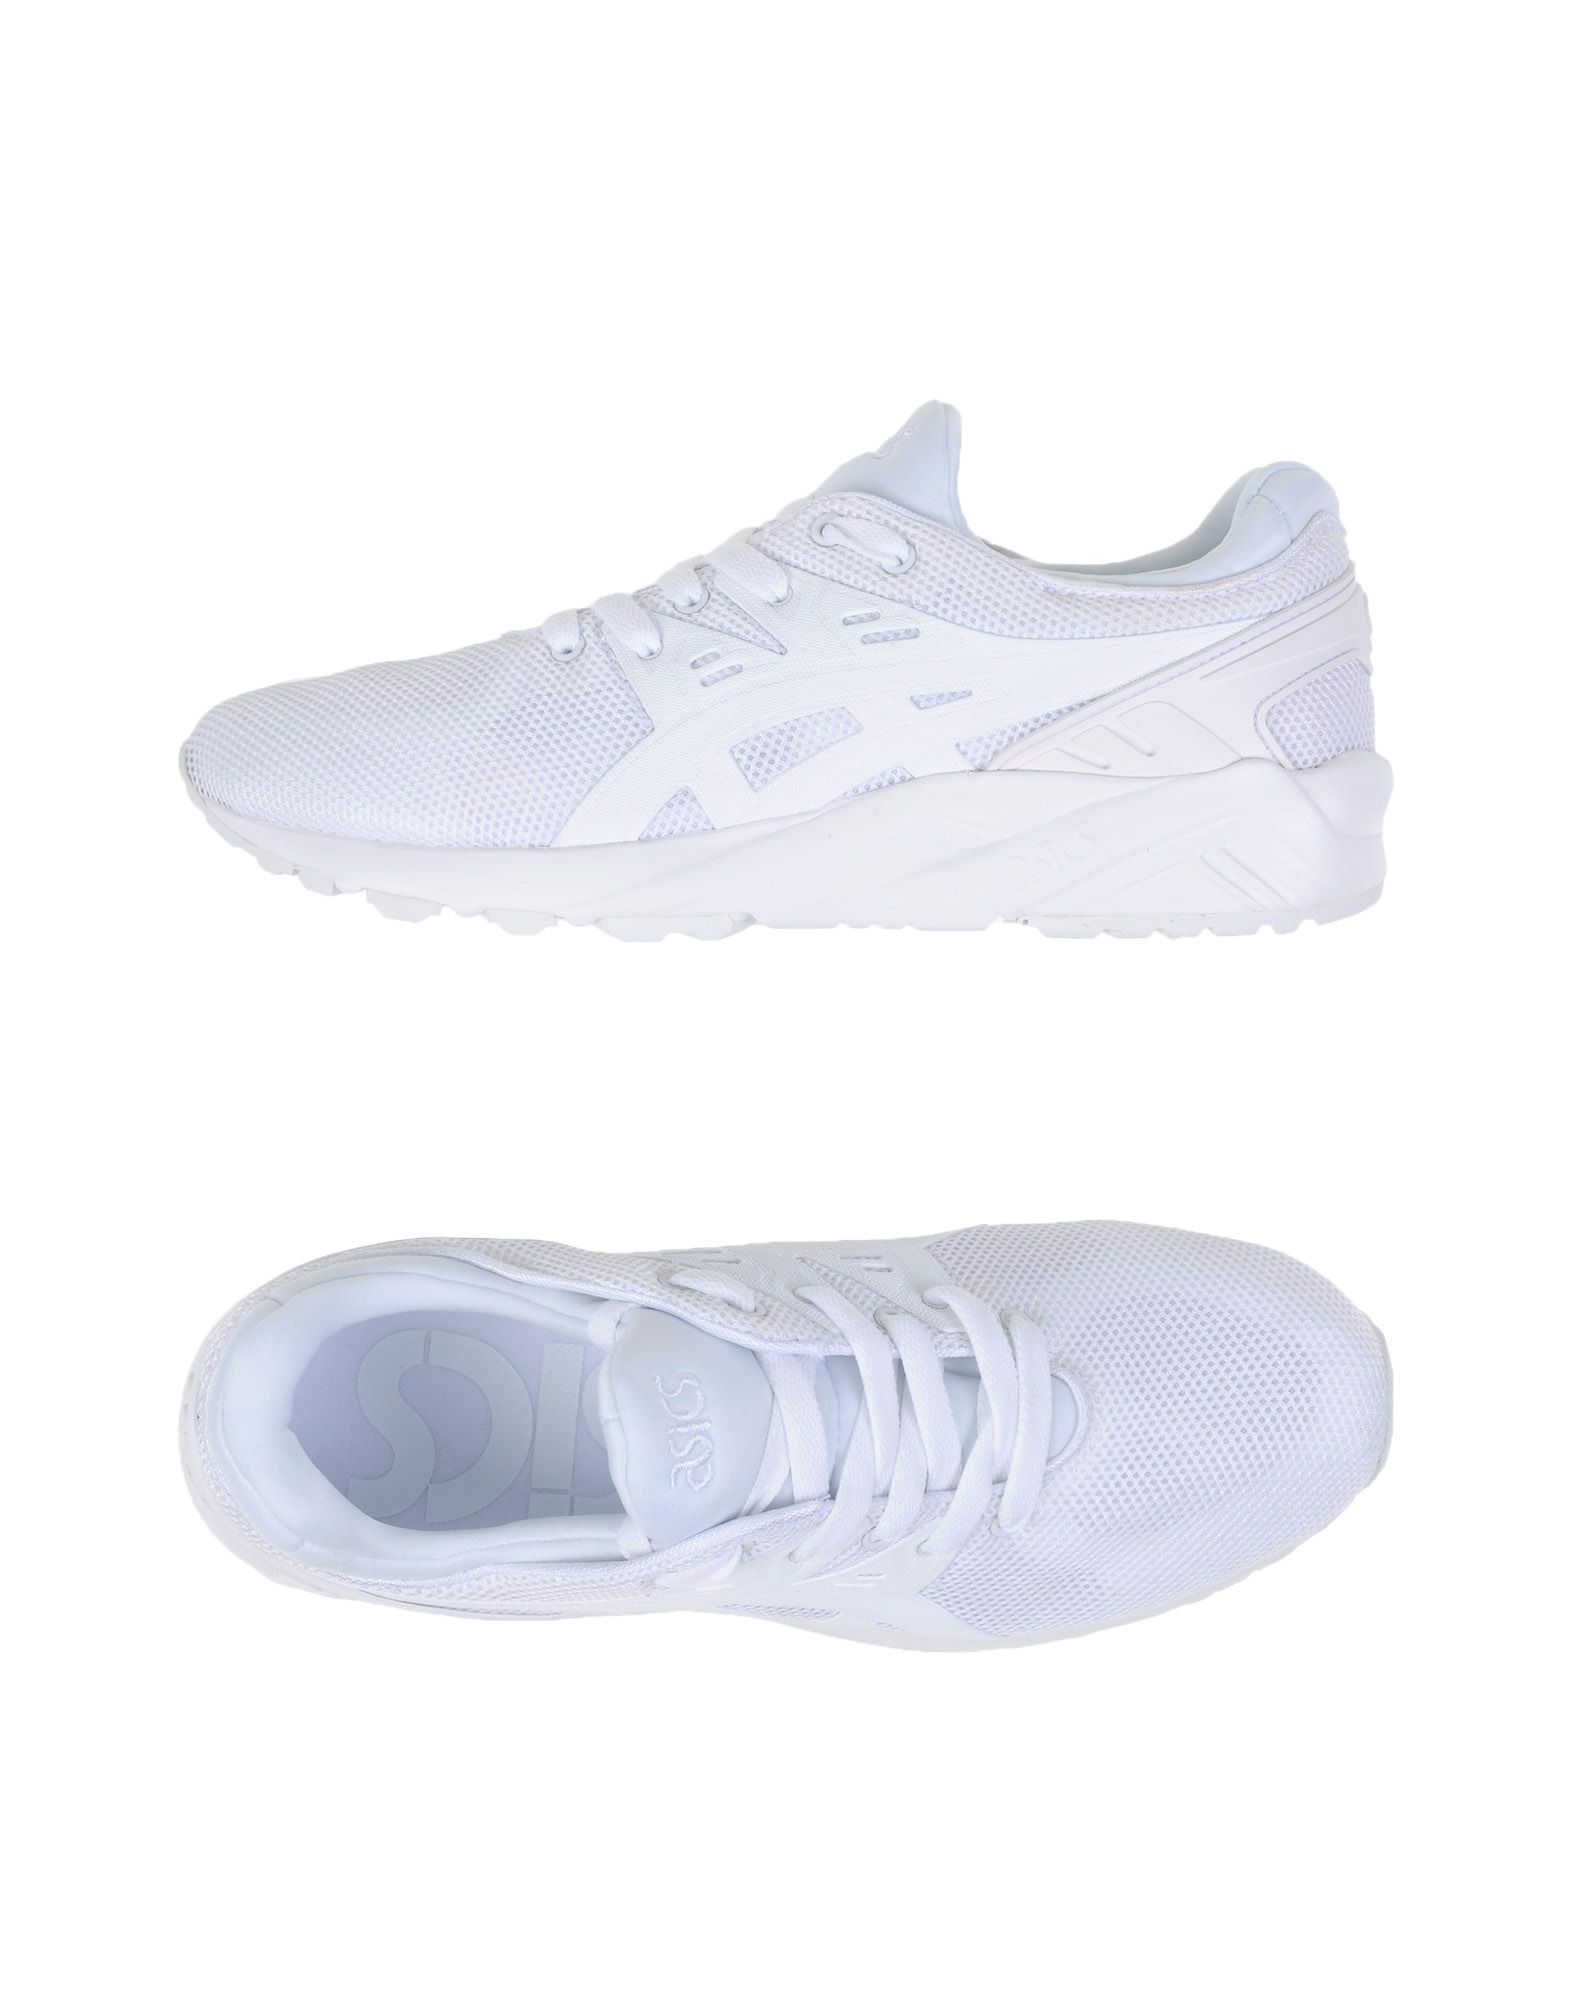 Sneakers Asics Tiger Gel-Kayano Trainer Evo - Donna - 11113456RM